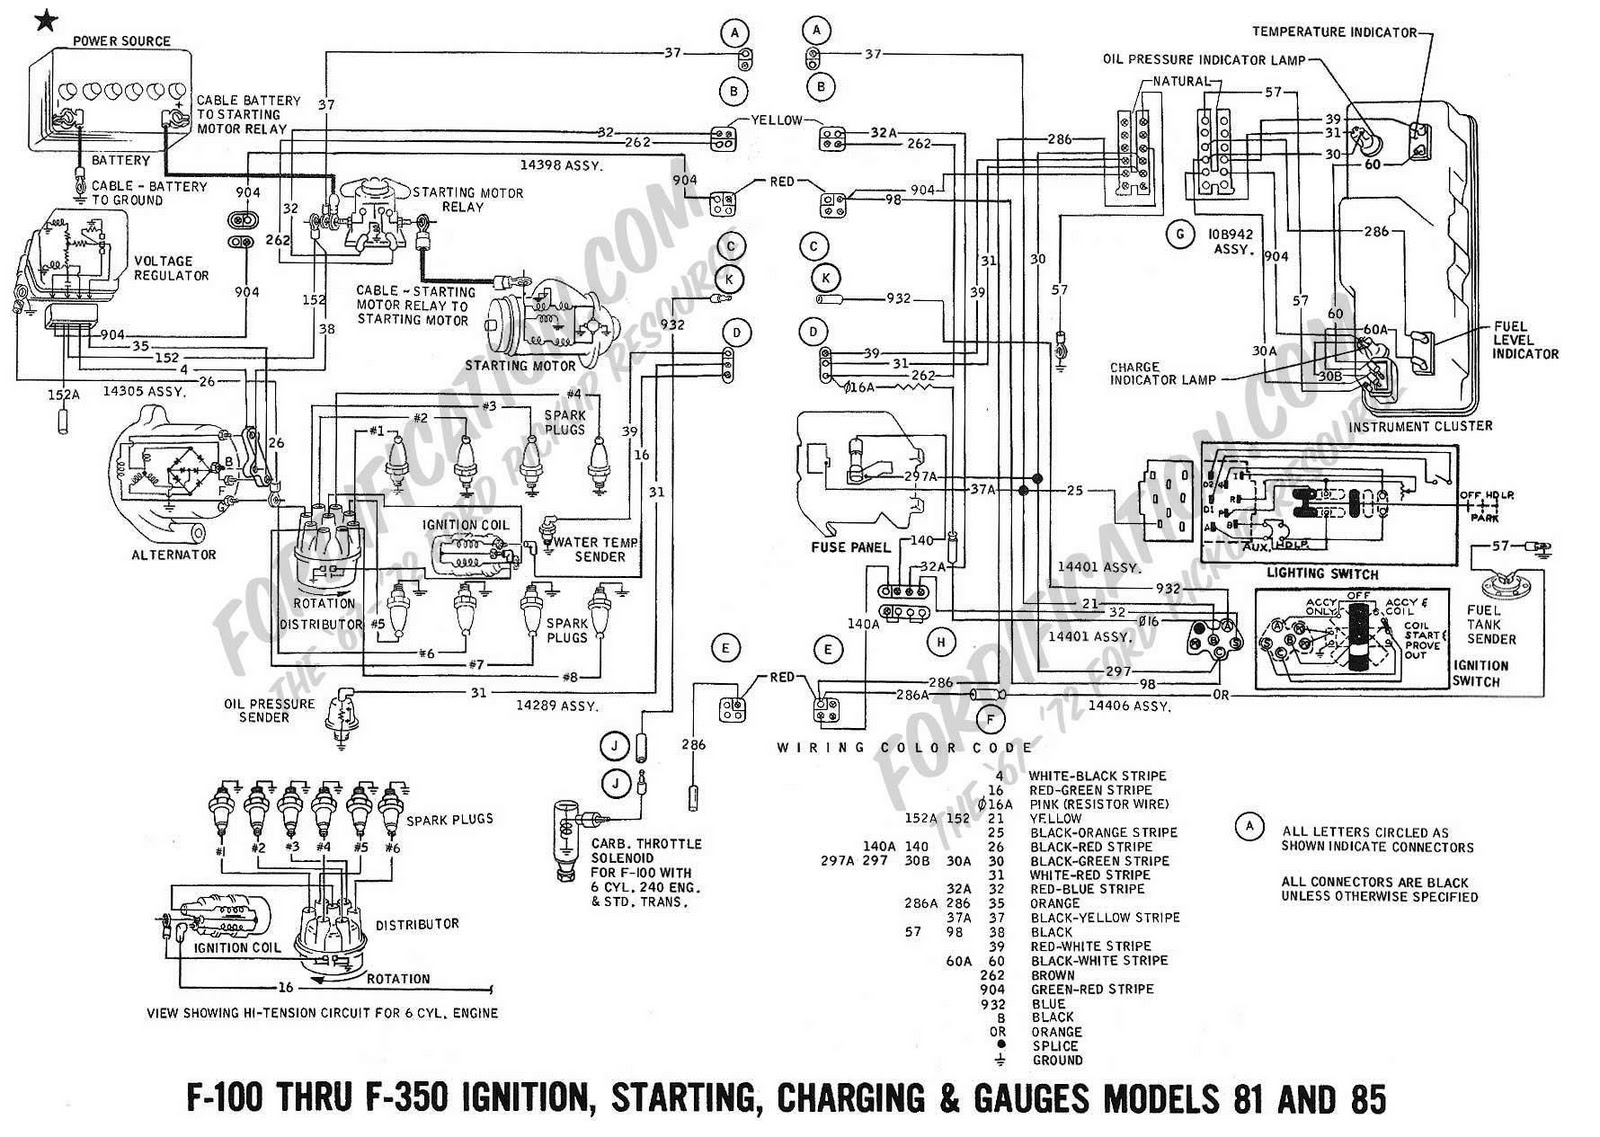 medium resolution of 1972 ford ignition diagram wiring diagram detailed 1974 ford electronic ignition wiring diagram 1976 ford f250